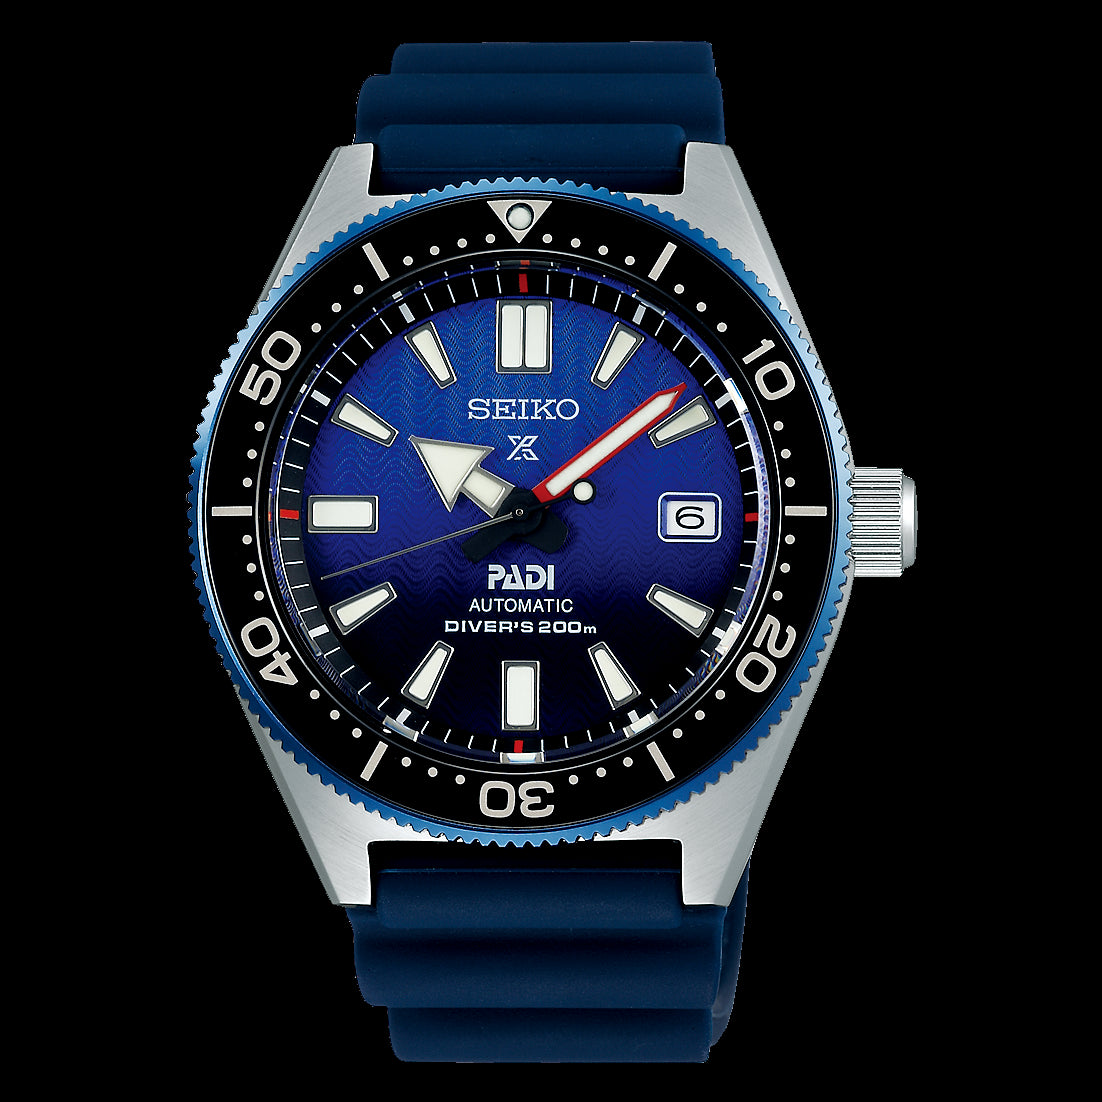 The Seiko PADI Gradient Prospex SPB071 Dive Watch